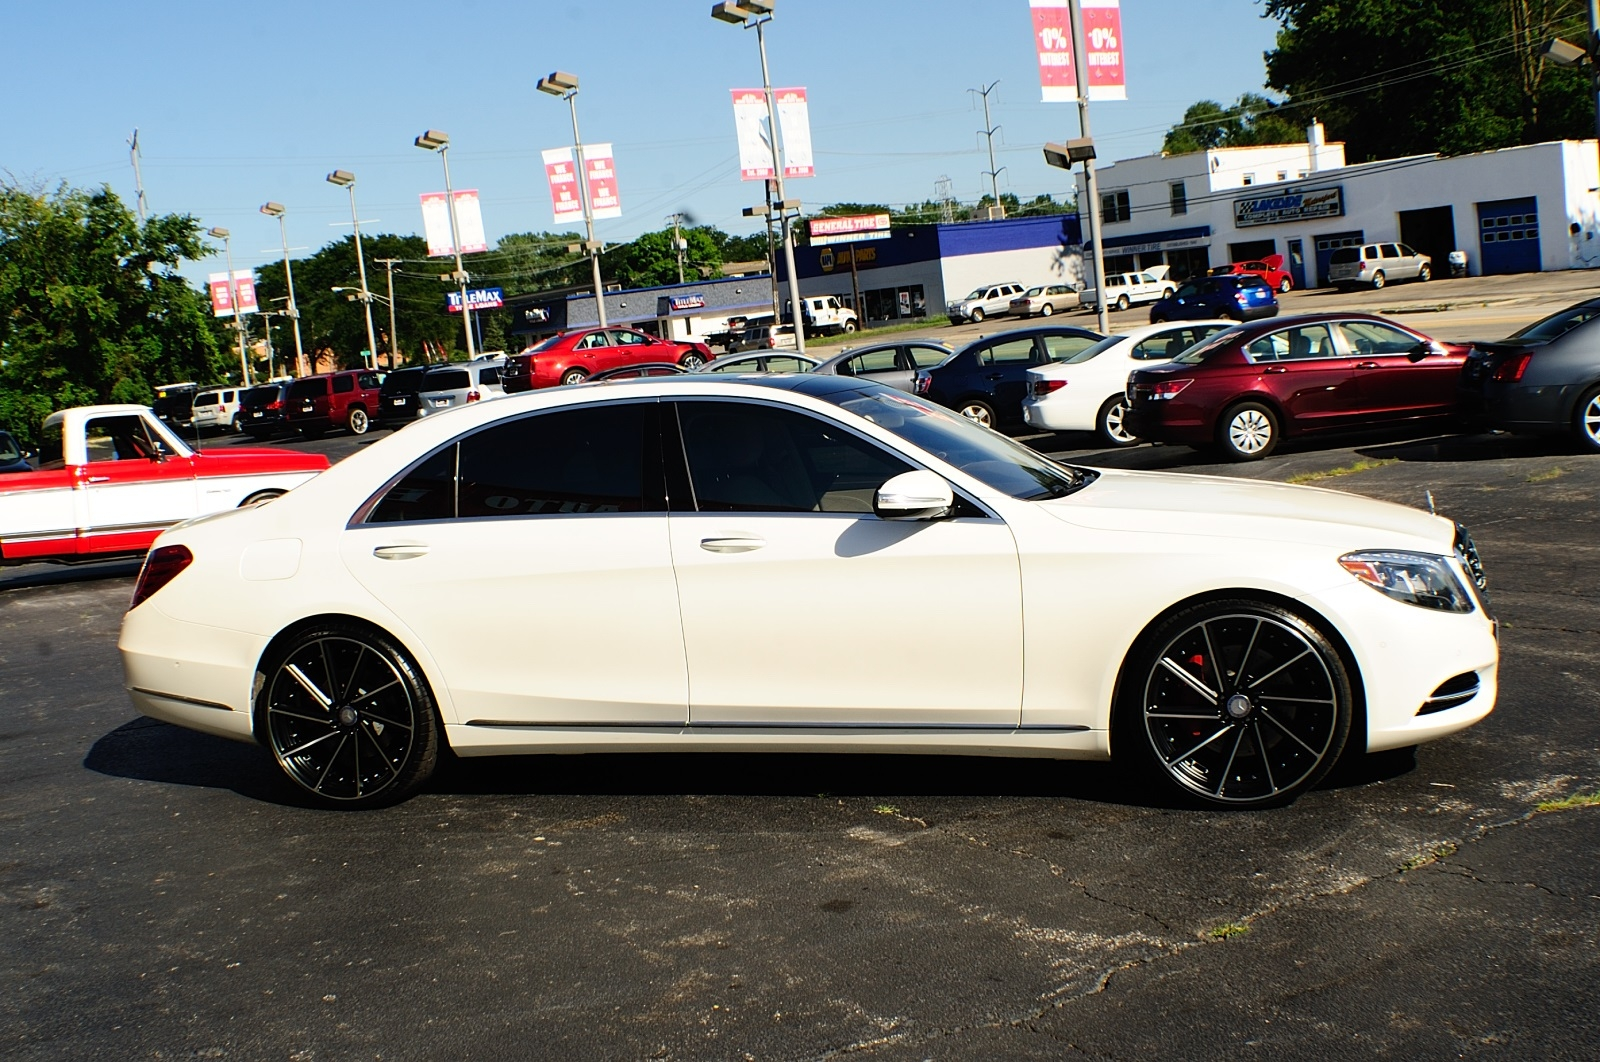 2014 Mercedes Benz S550 4Matic AWD Turbo White Sedan used car Sale Bannockburn Barrington Beach Park